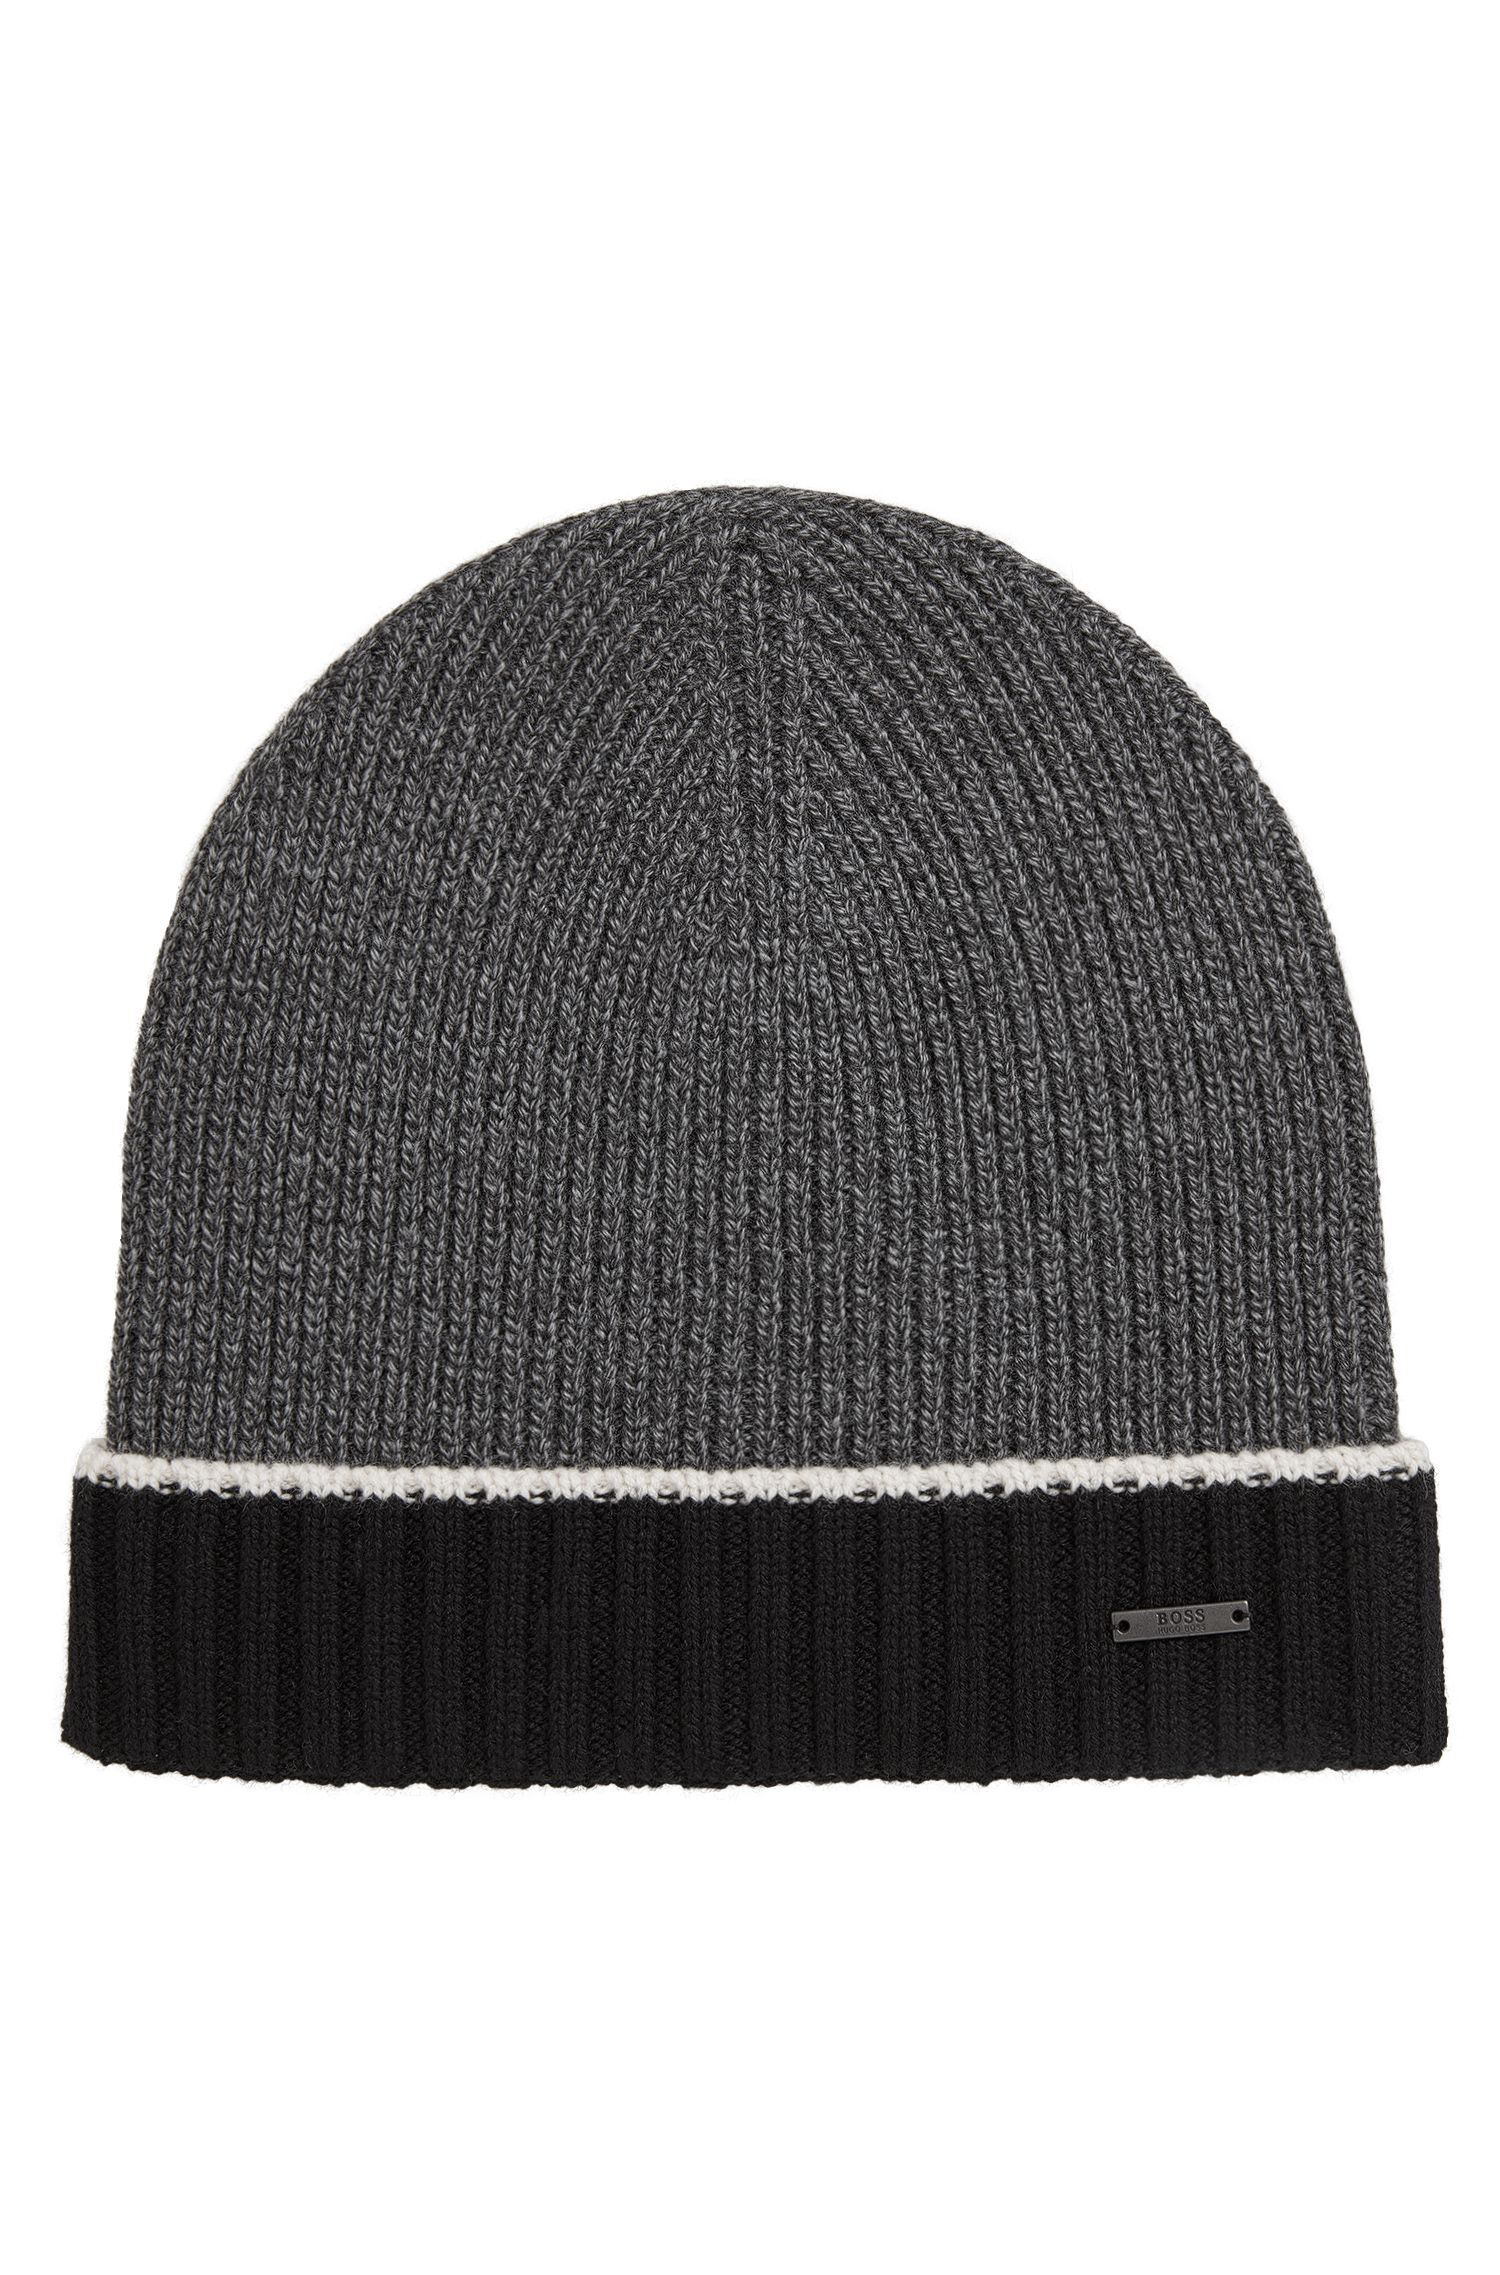 Virgin Wool Beanie | Frisk, Black